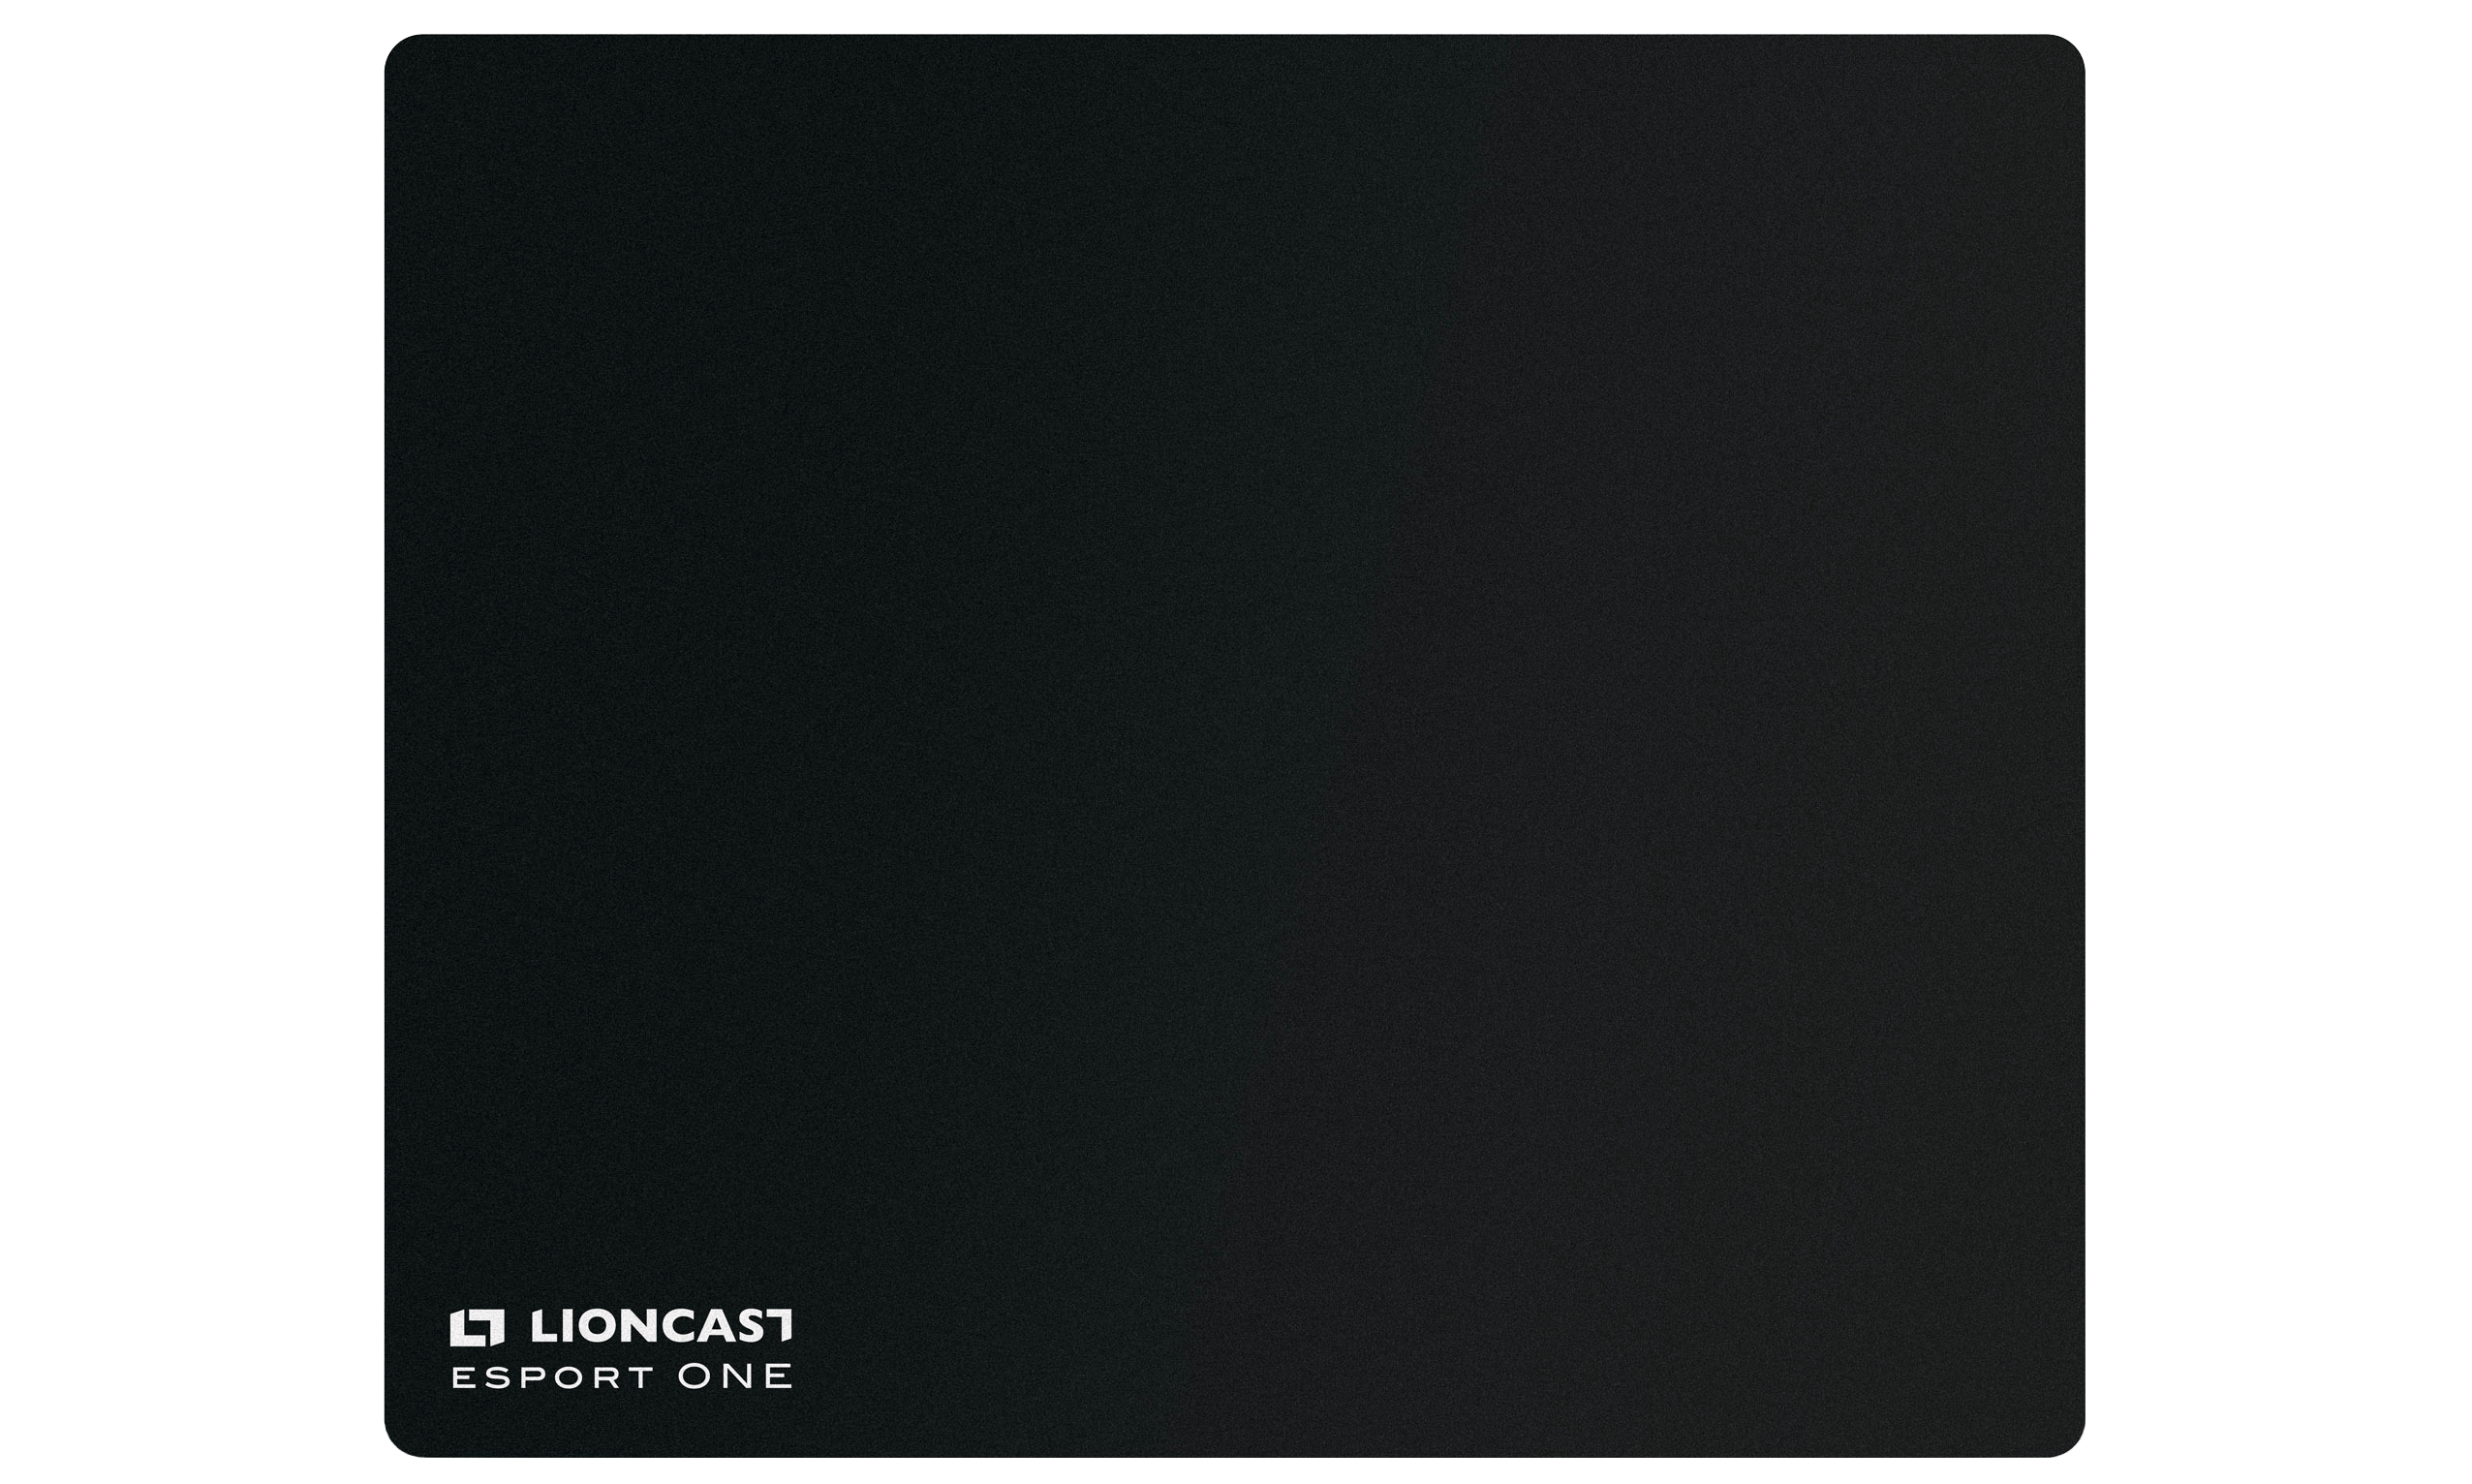 Mouse pad png. Lioncast esport one black